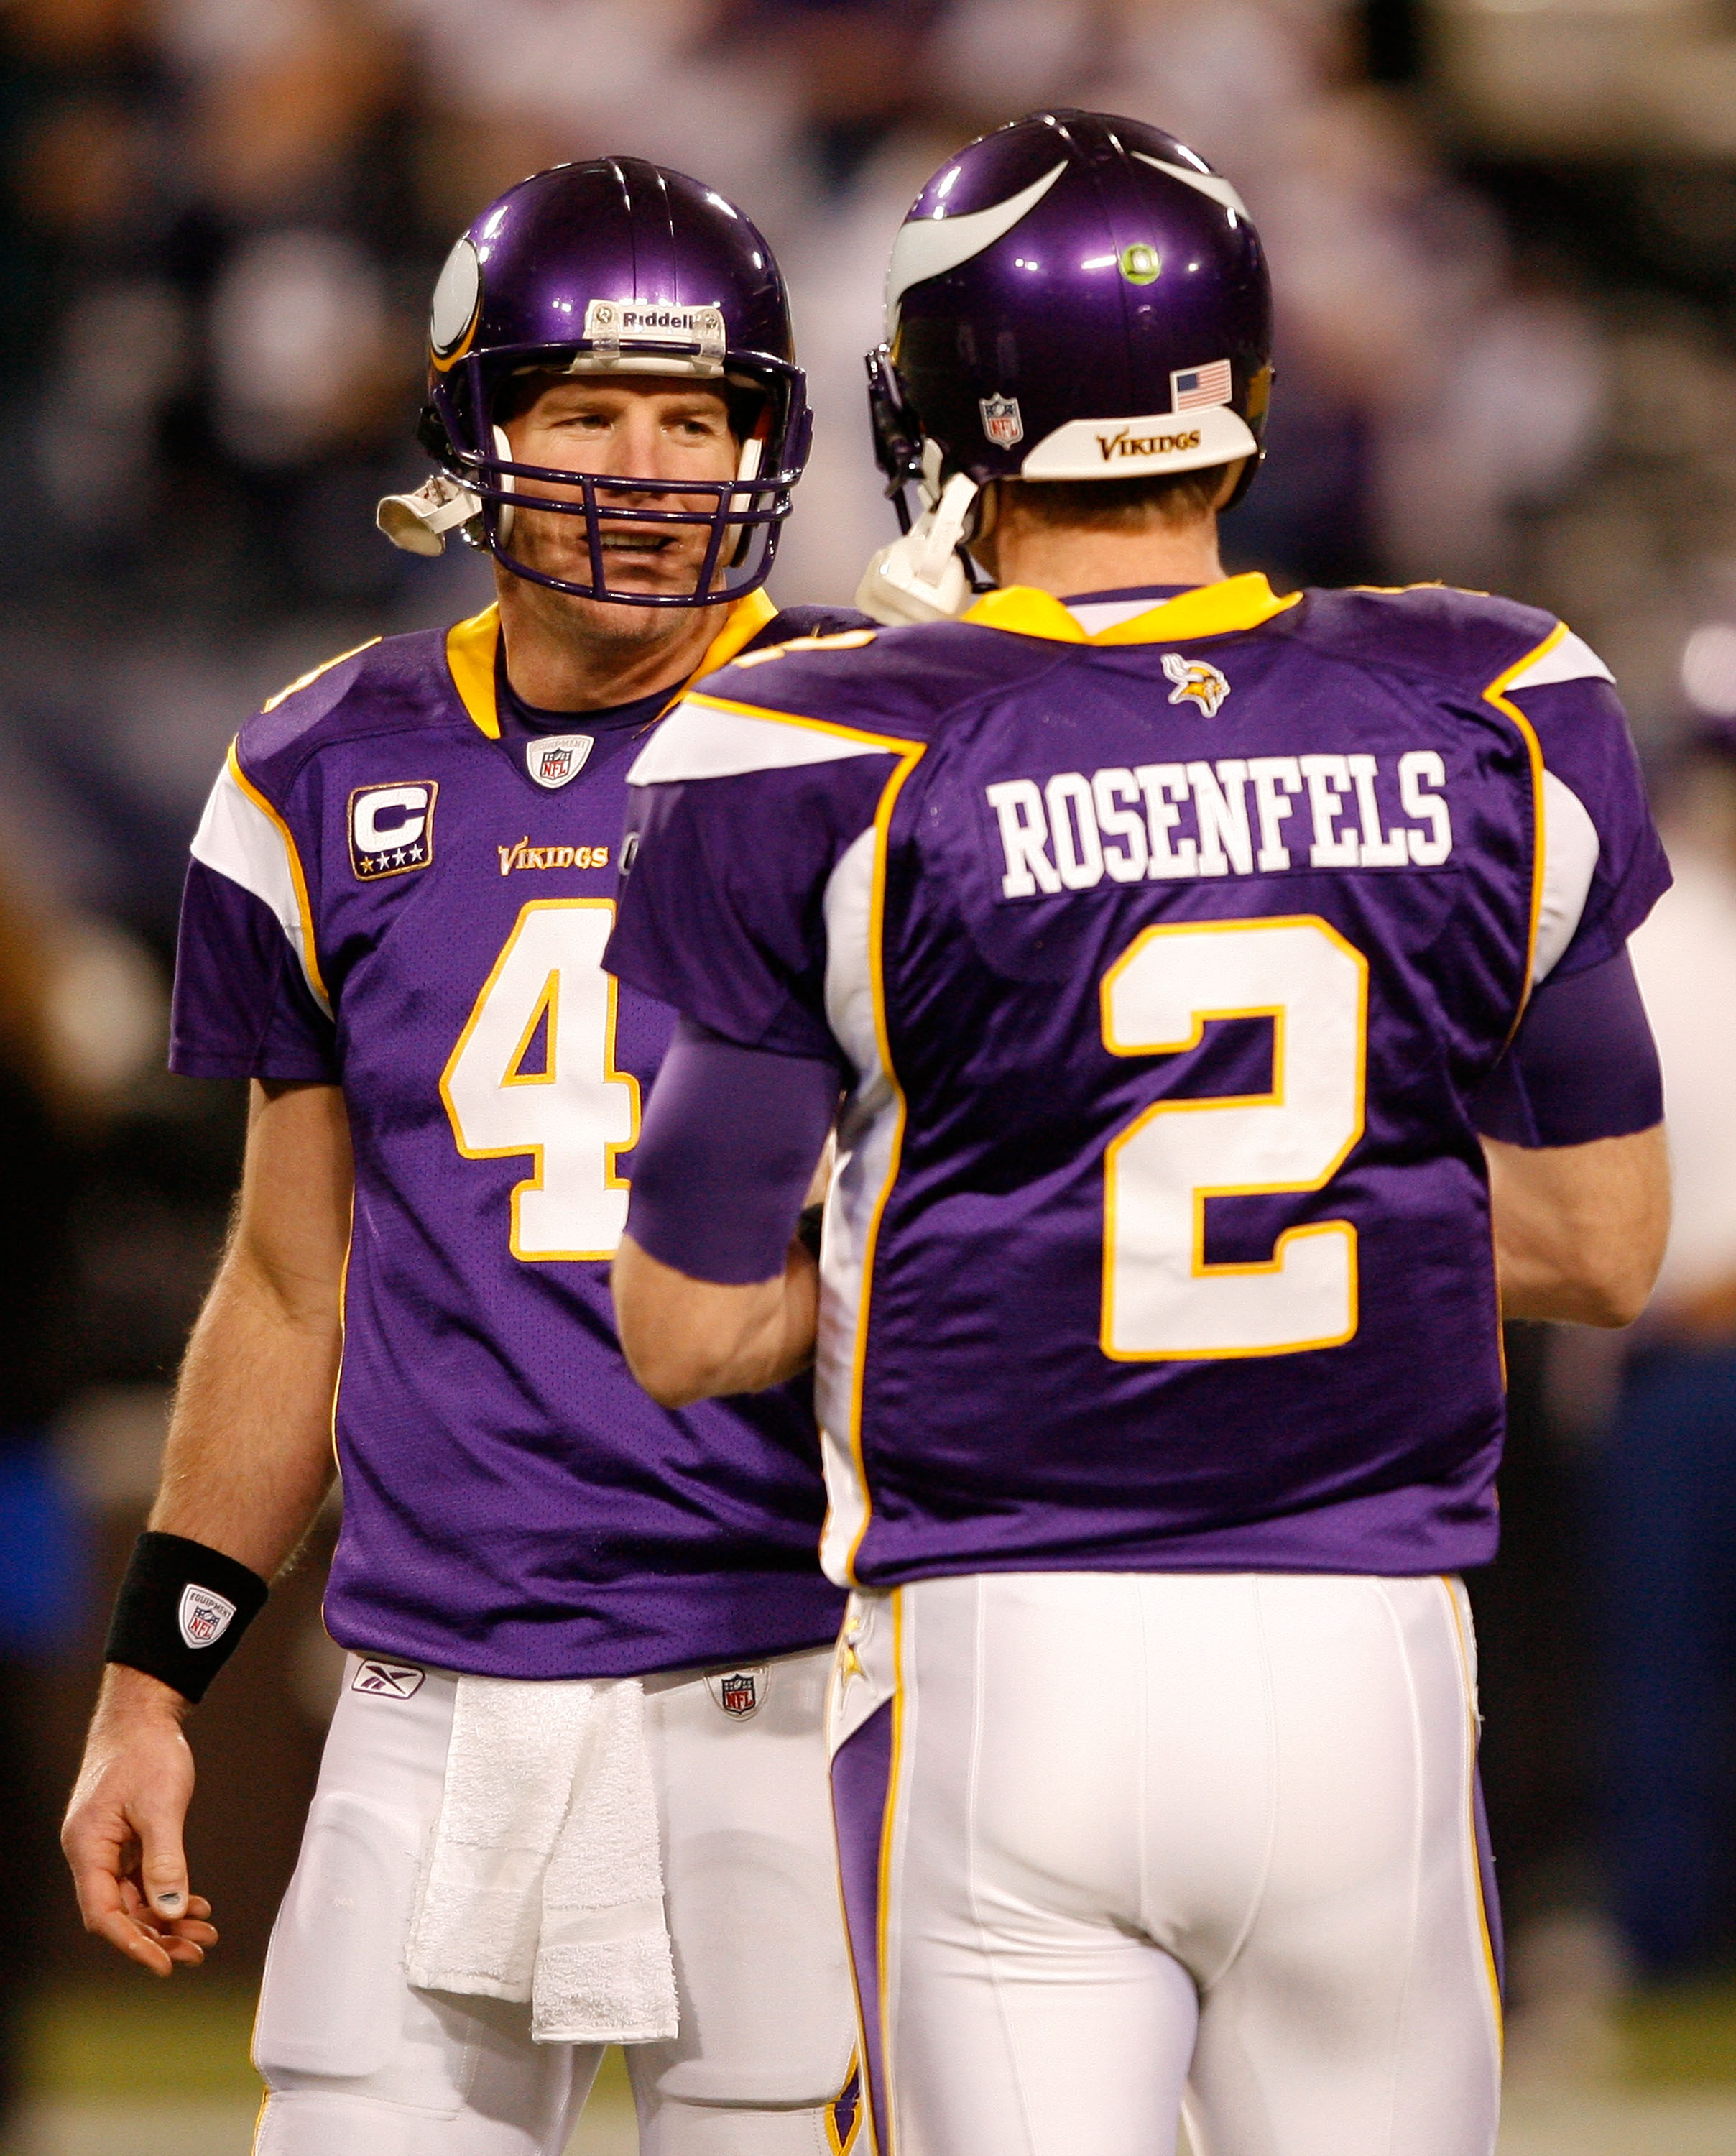 MINNEAPOLIS - JANUARY 17:  Quarterback Brett Favre #4 of the Minnesota Vikings talks with quarterback Sage Rosenfels #2 before the game against the Dallas Cowboys during the NFC Divisional Playoff Game at Hubert H. Humphrey Metrodome on January 17, 2010 i